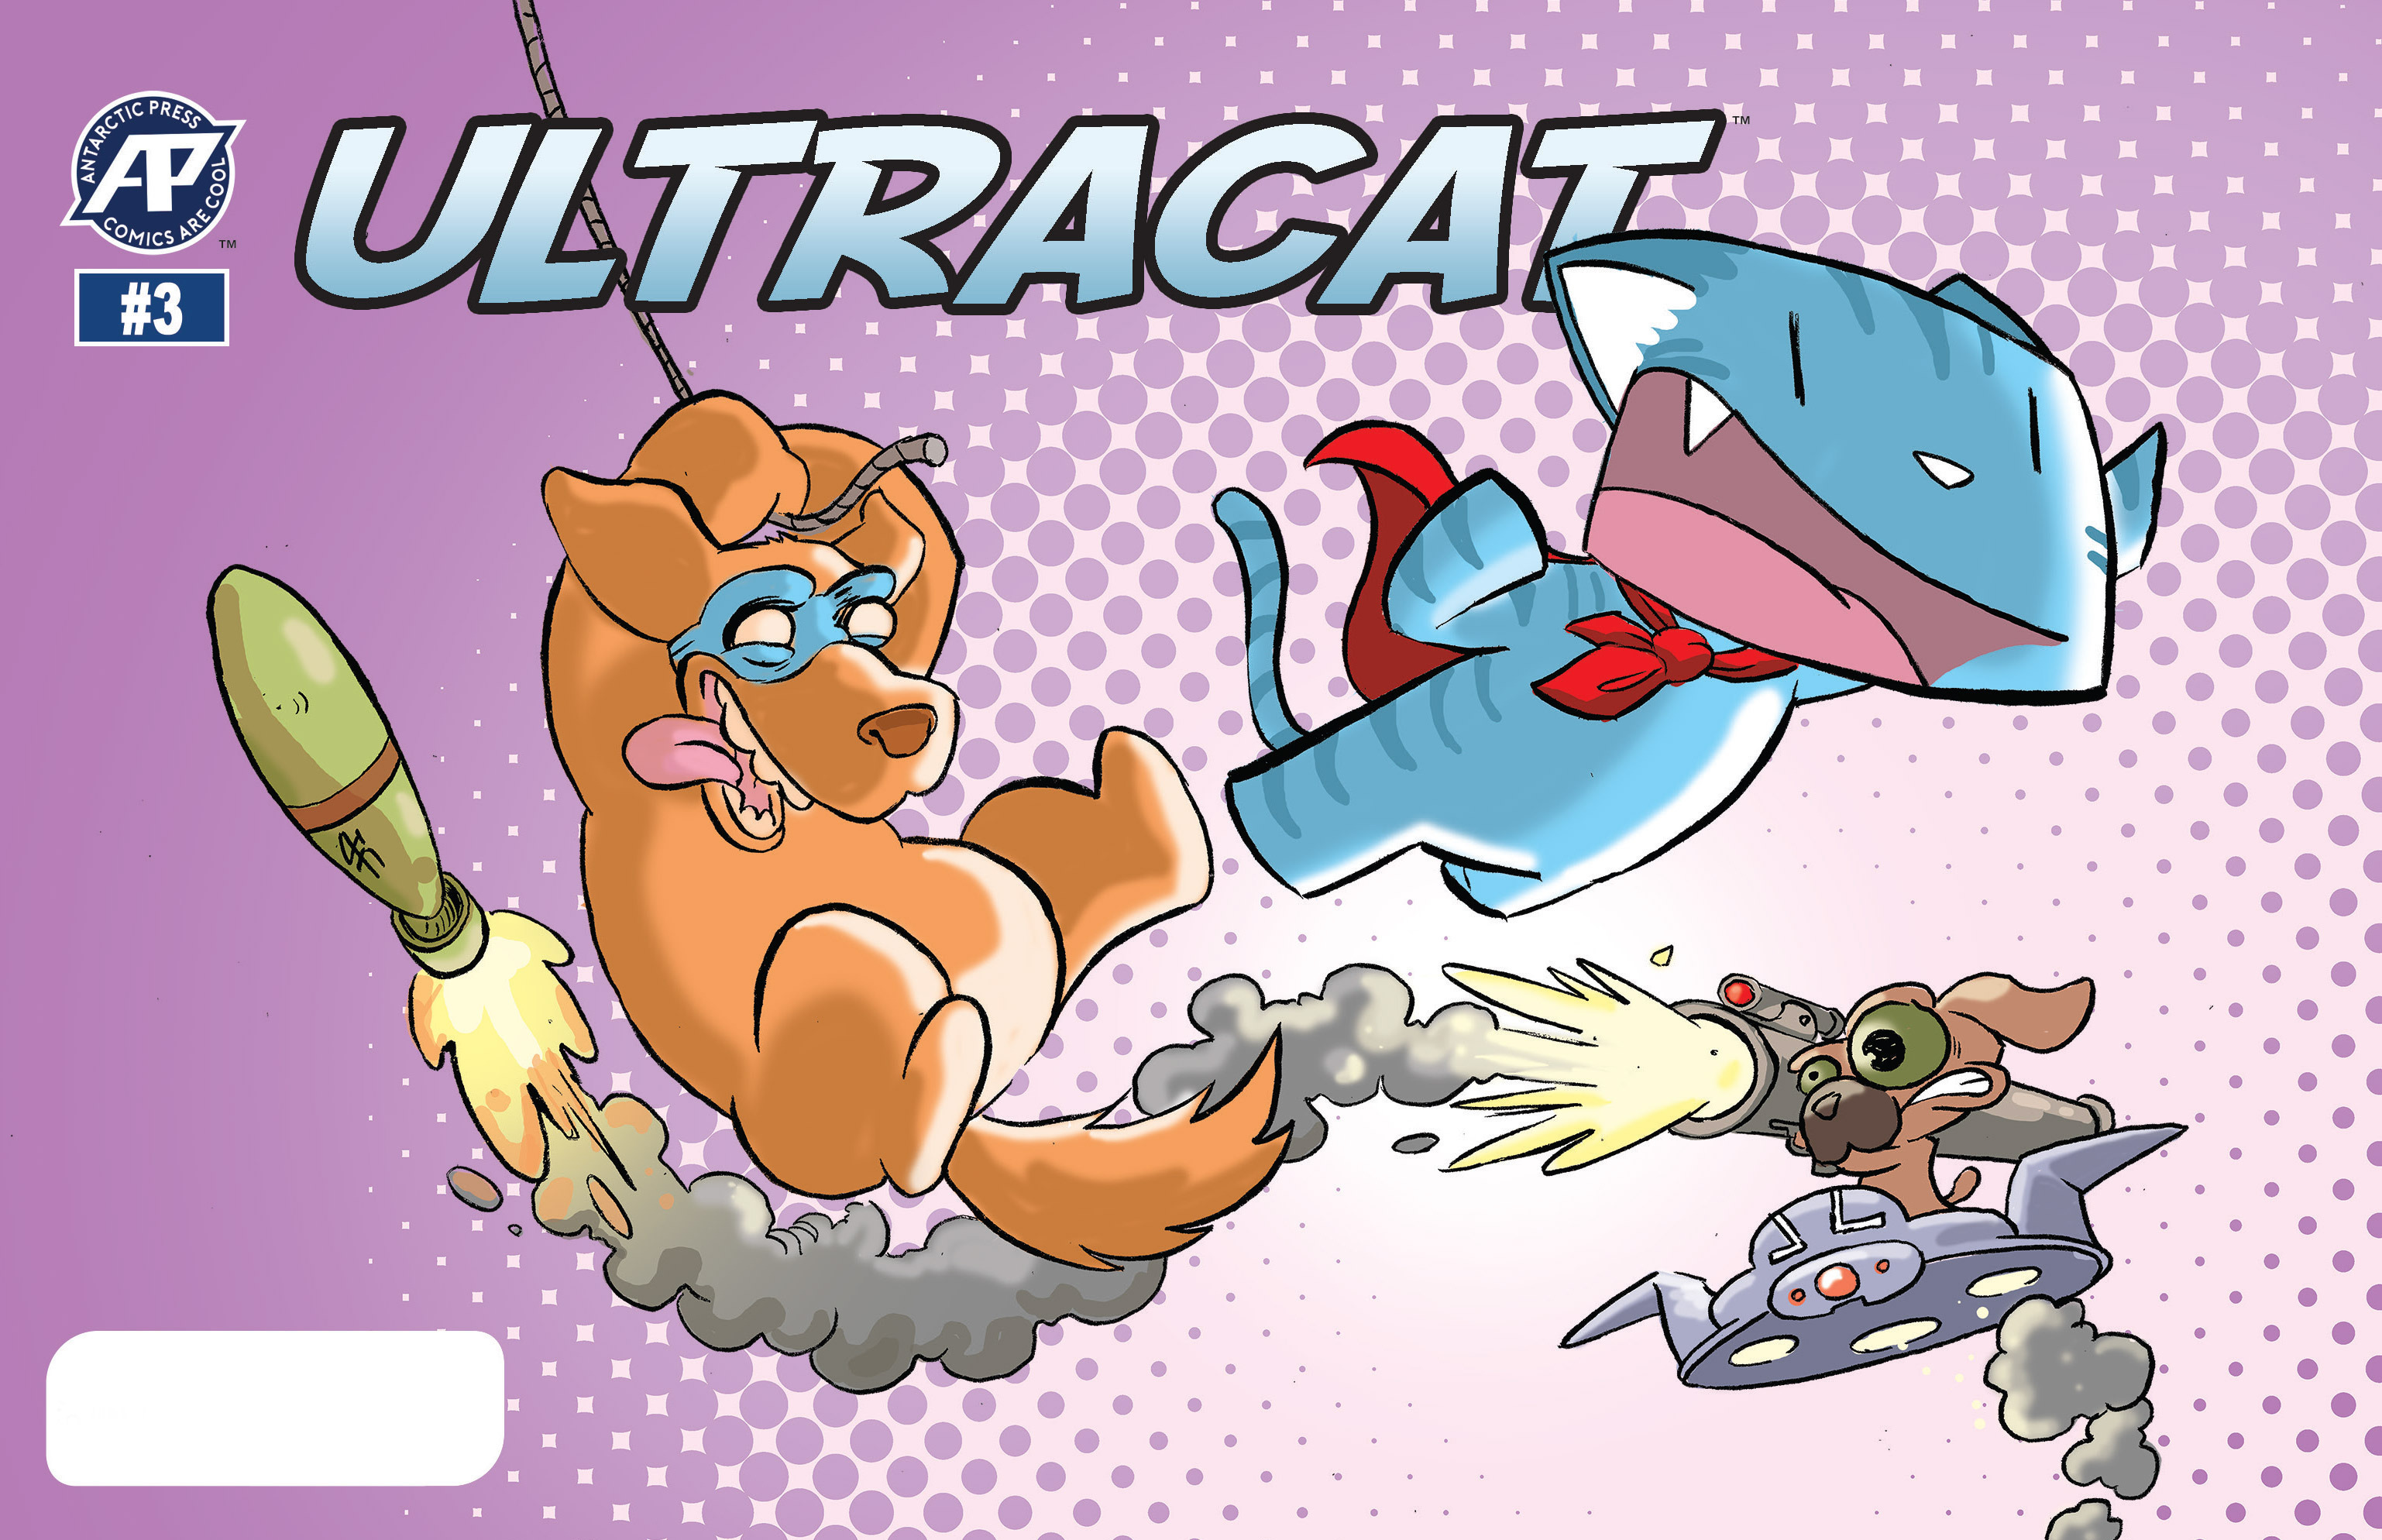 Read online Ultracat comic -  Issue #3 - 1